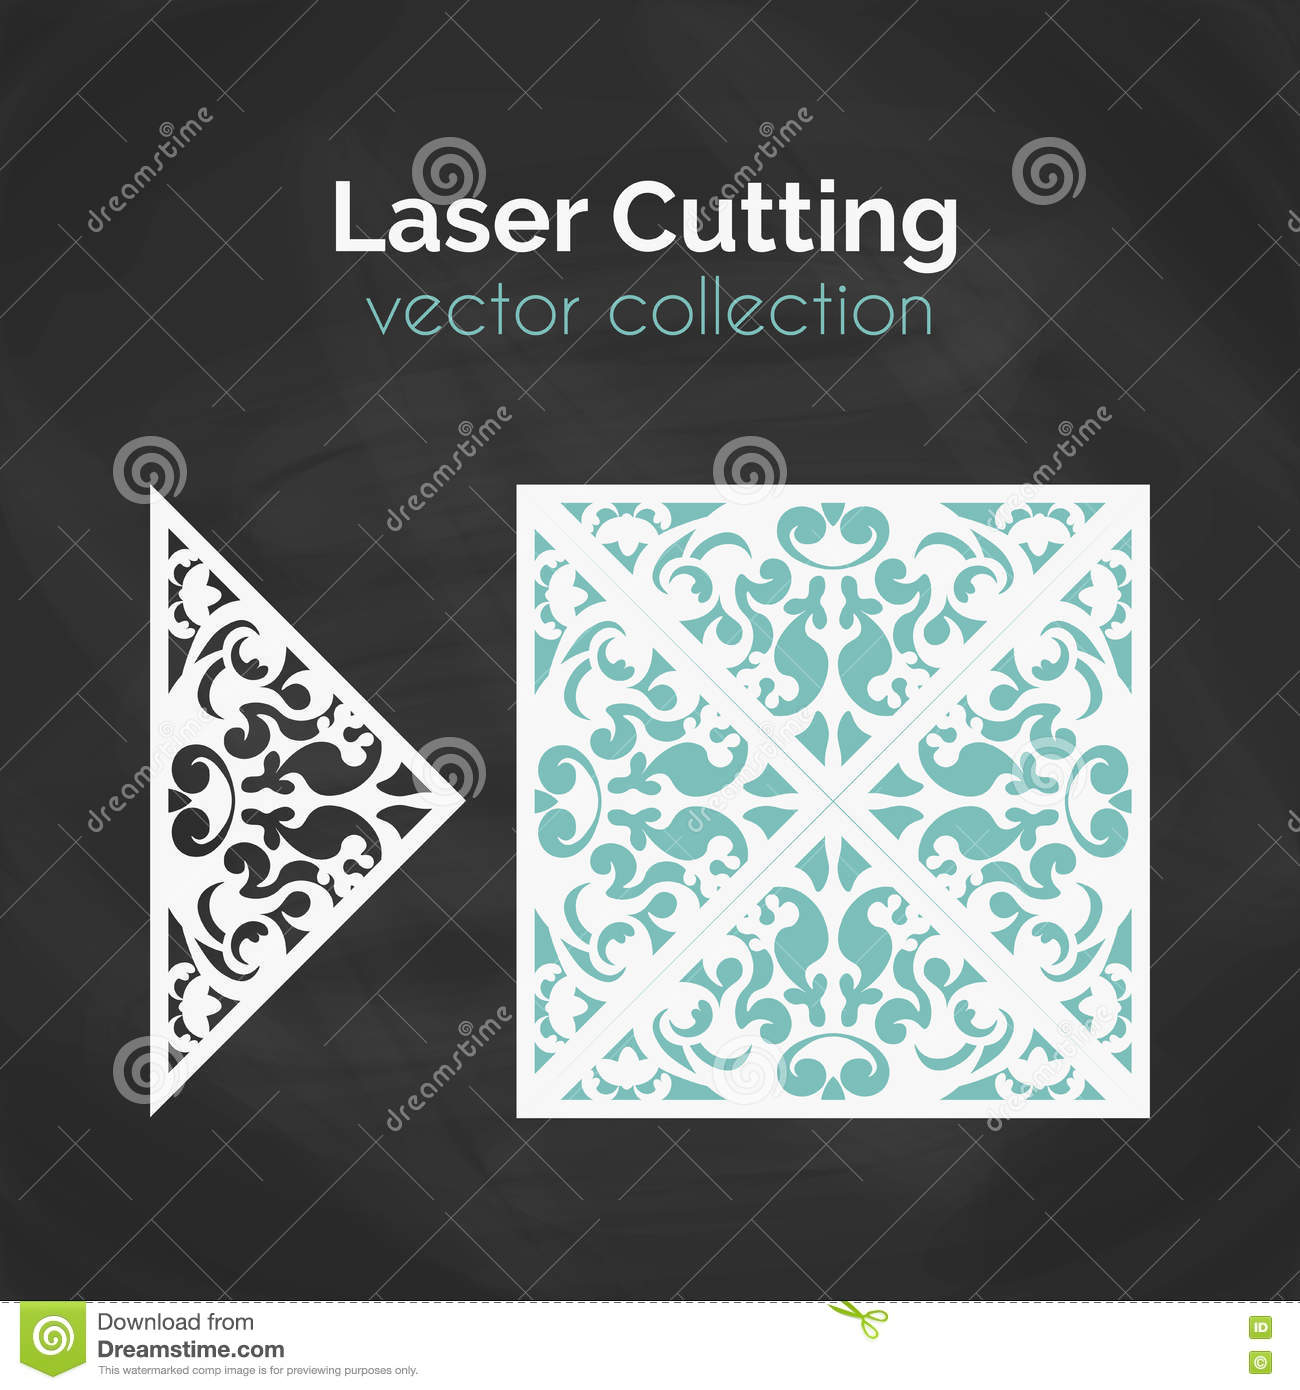 Laser Cut Card. Template For Laser Cutting. Cutout Illustration With ...